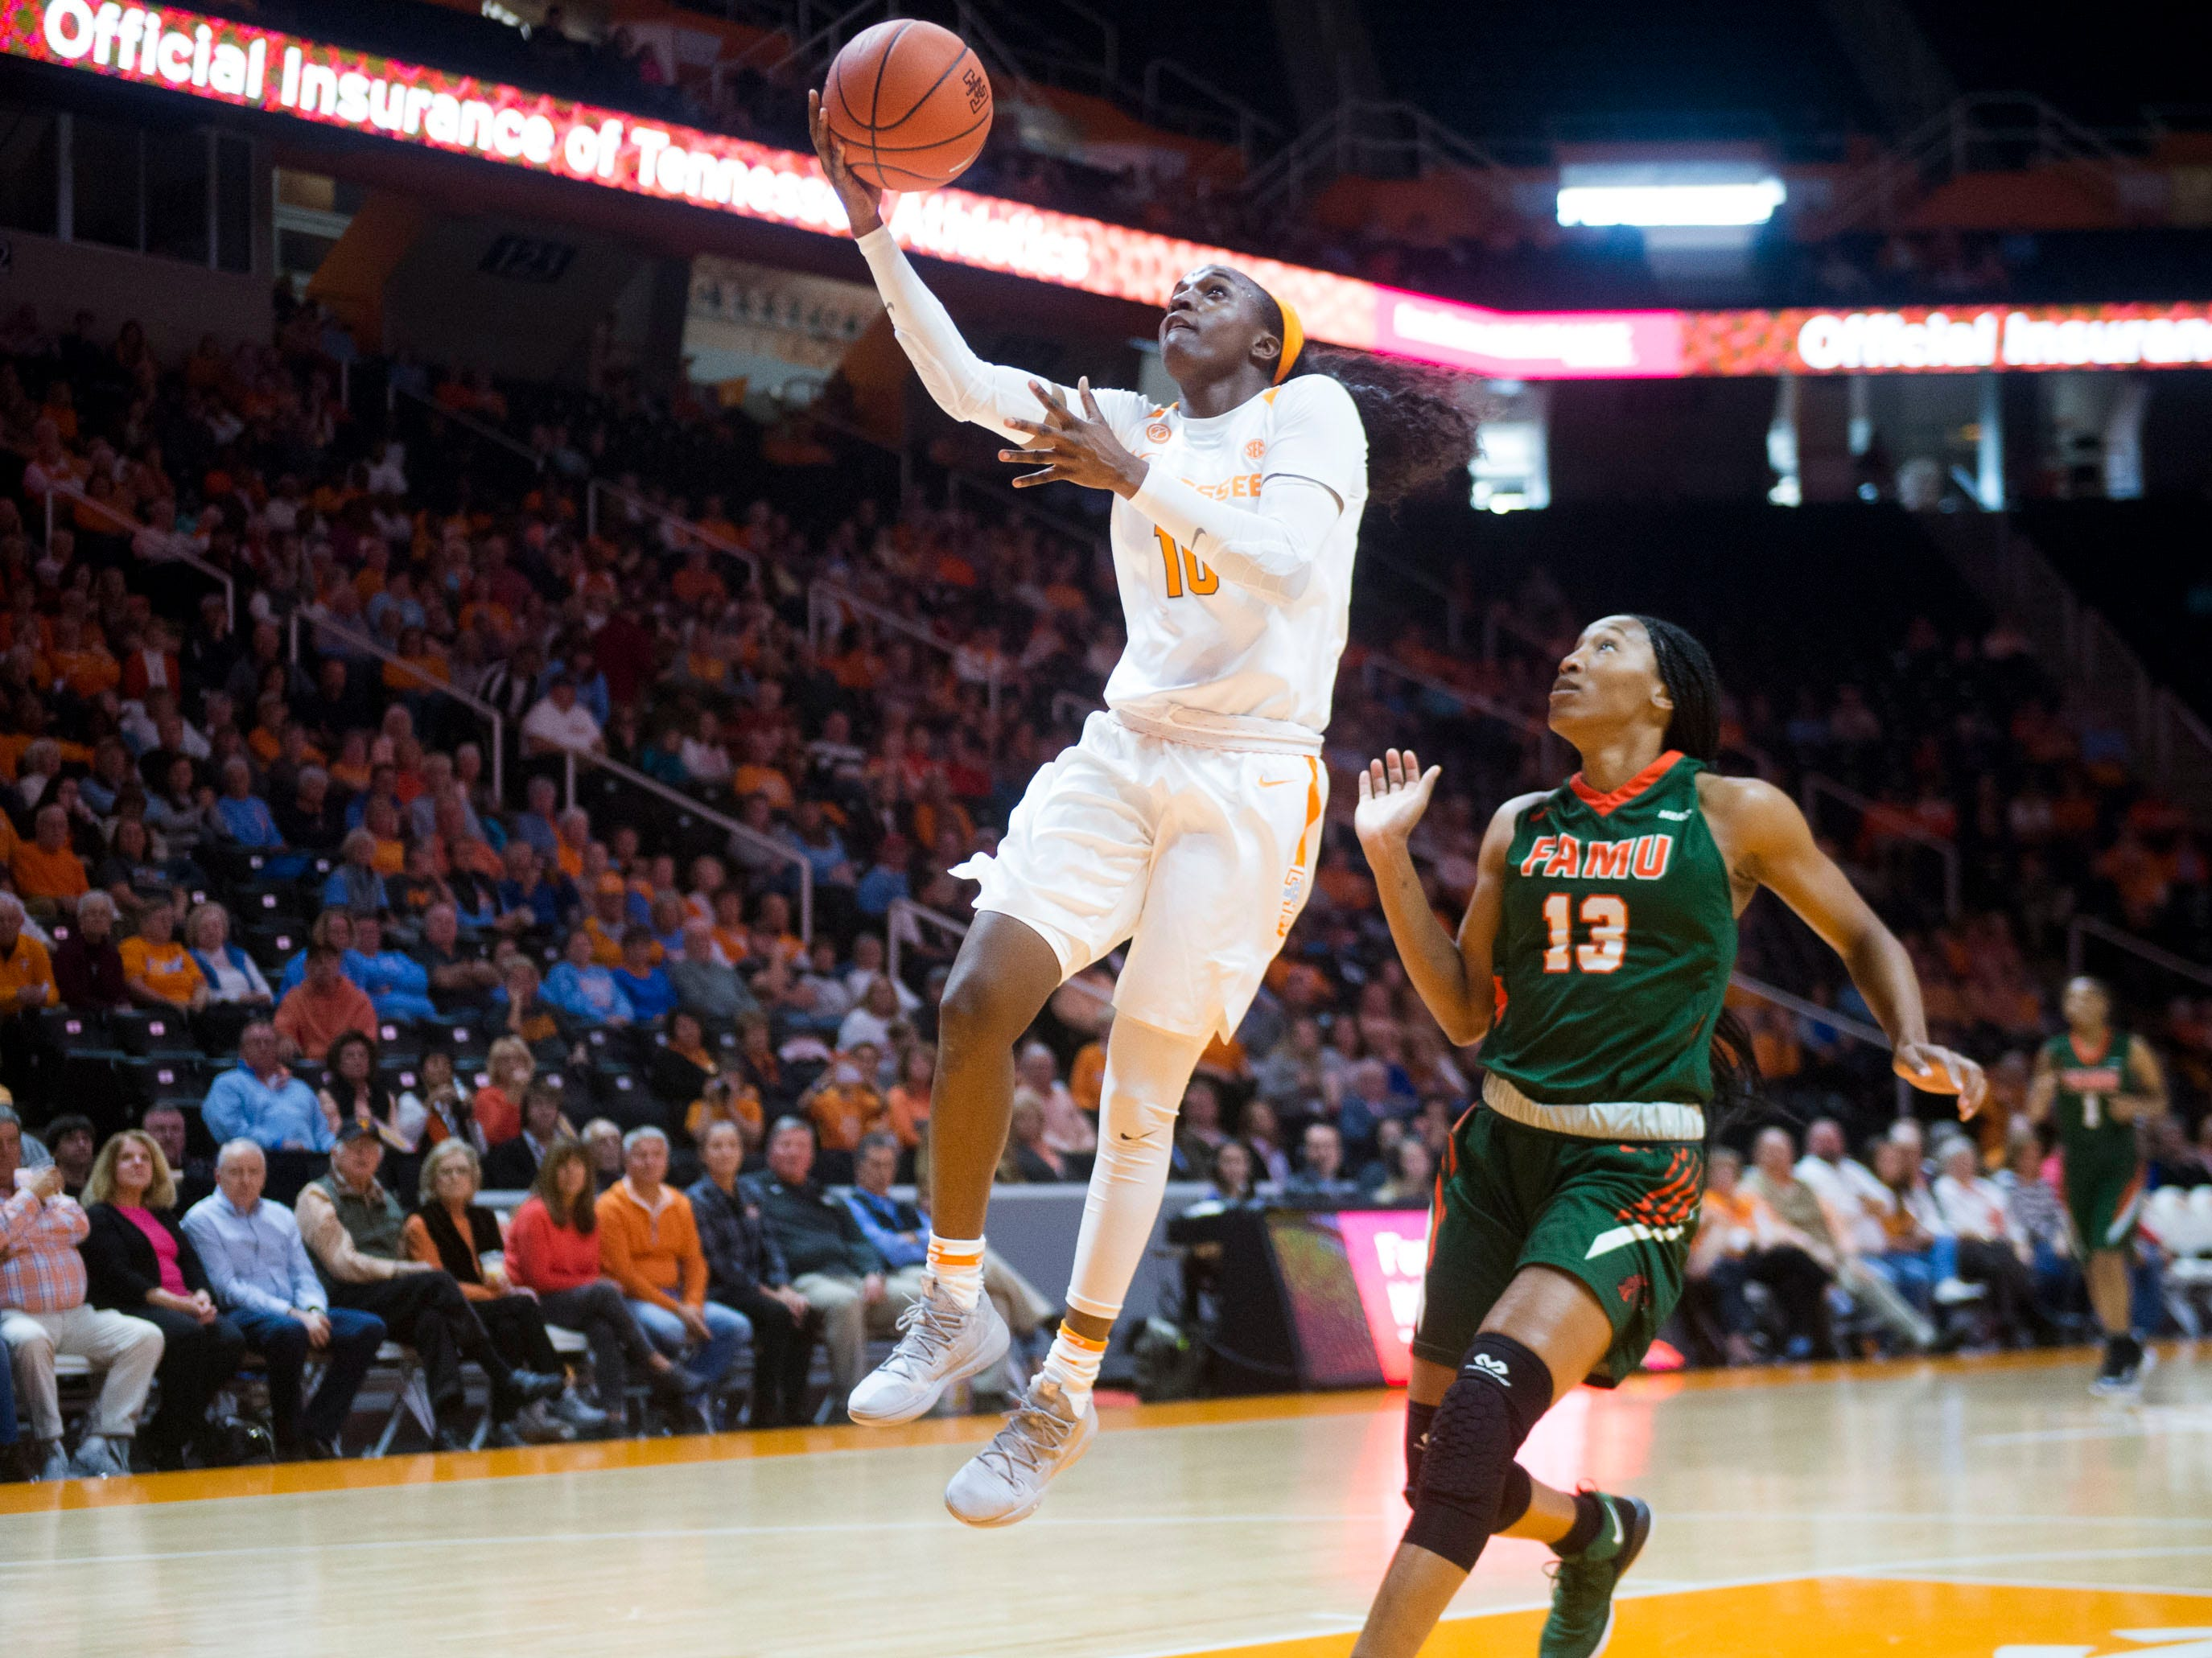 Tennessee's Meme Jackson (10) attempts to score while defended by Florida A&M's Dy'Manee Royal (13) on Sunday, November 18, 2018 at Thompson-Boling Arena.